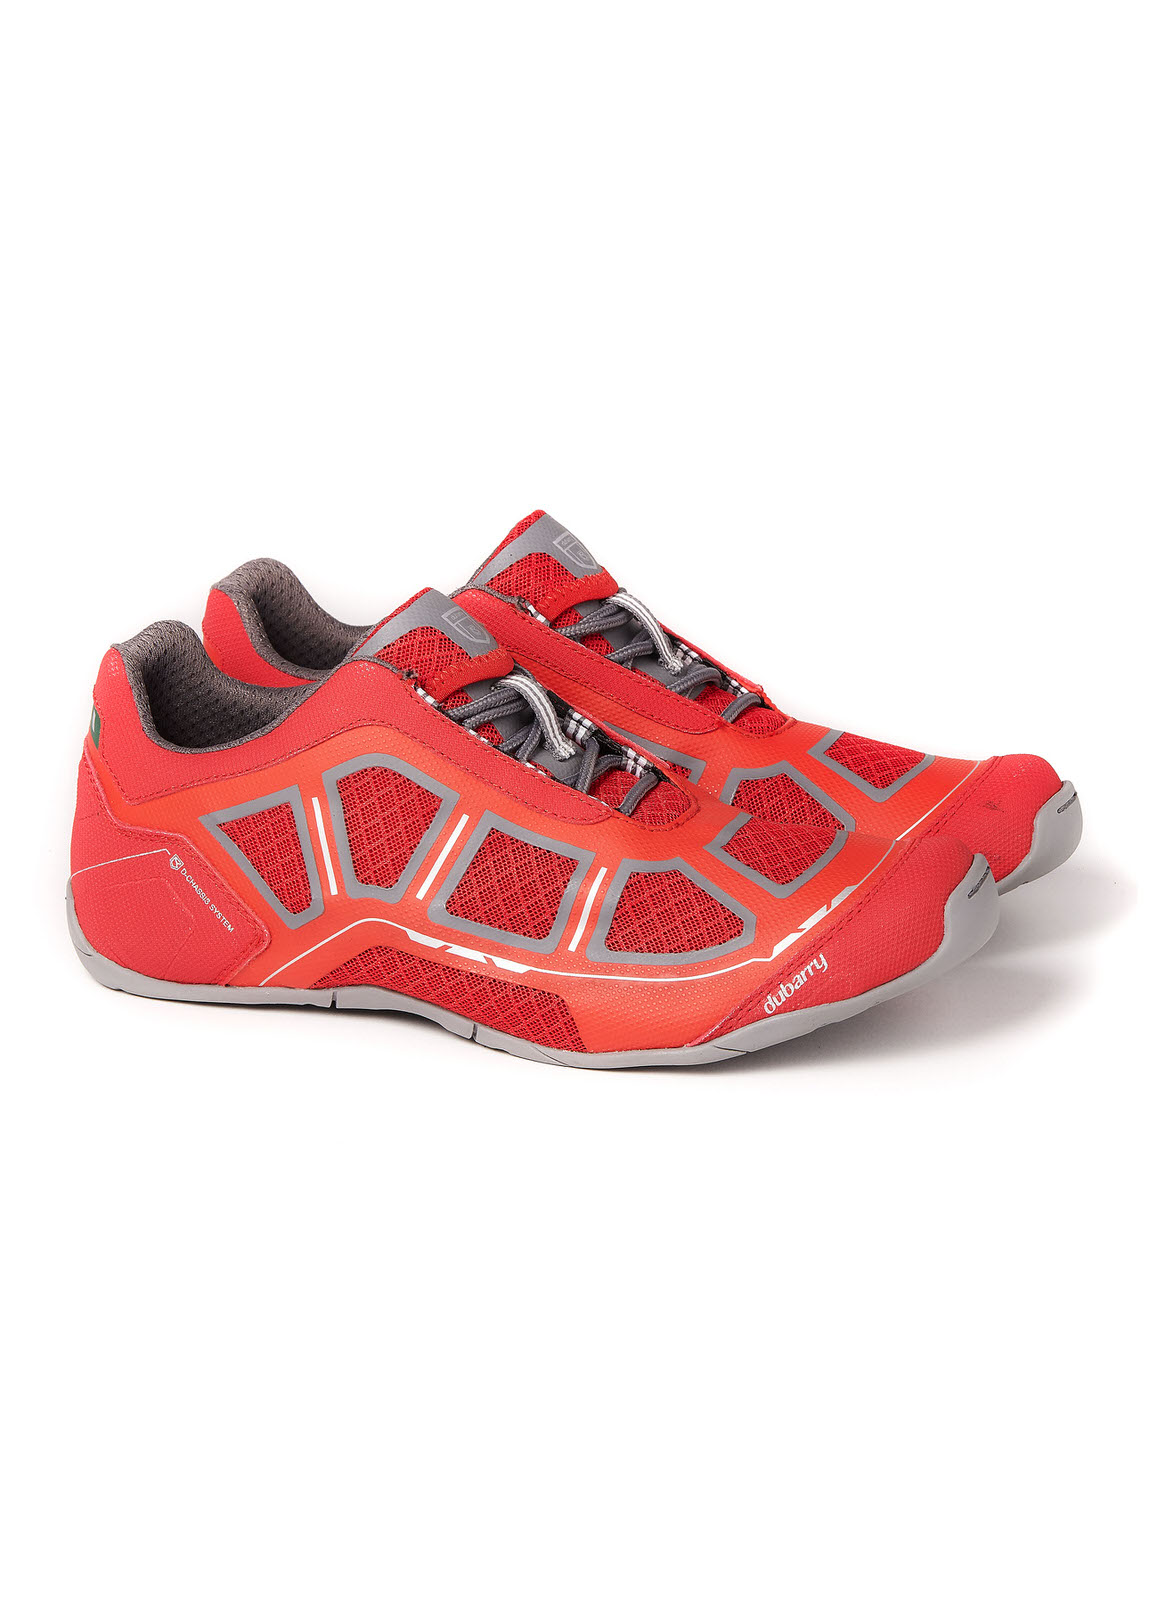 Easkey_Sailing_Shoe_Red_Image_1